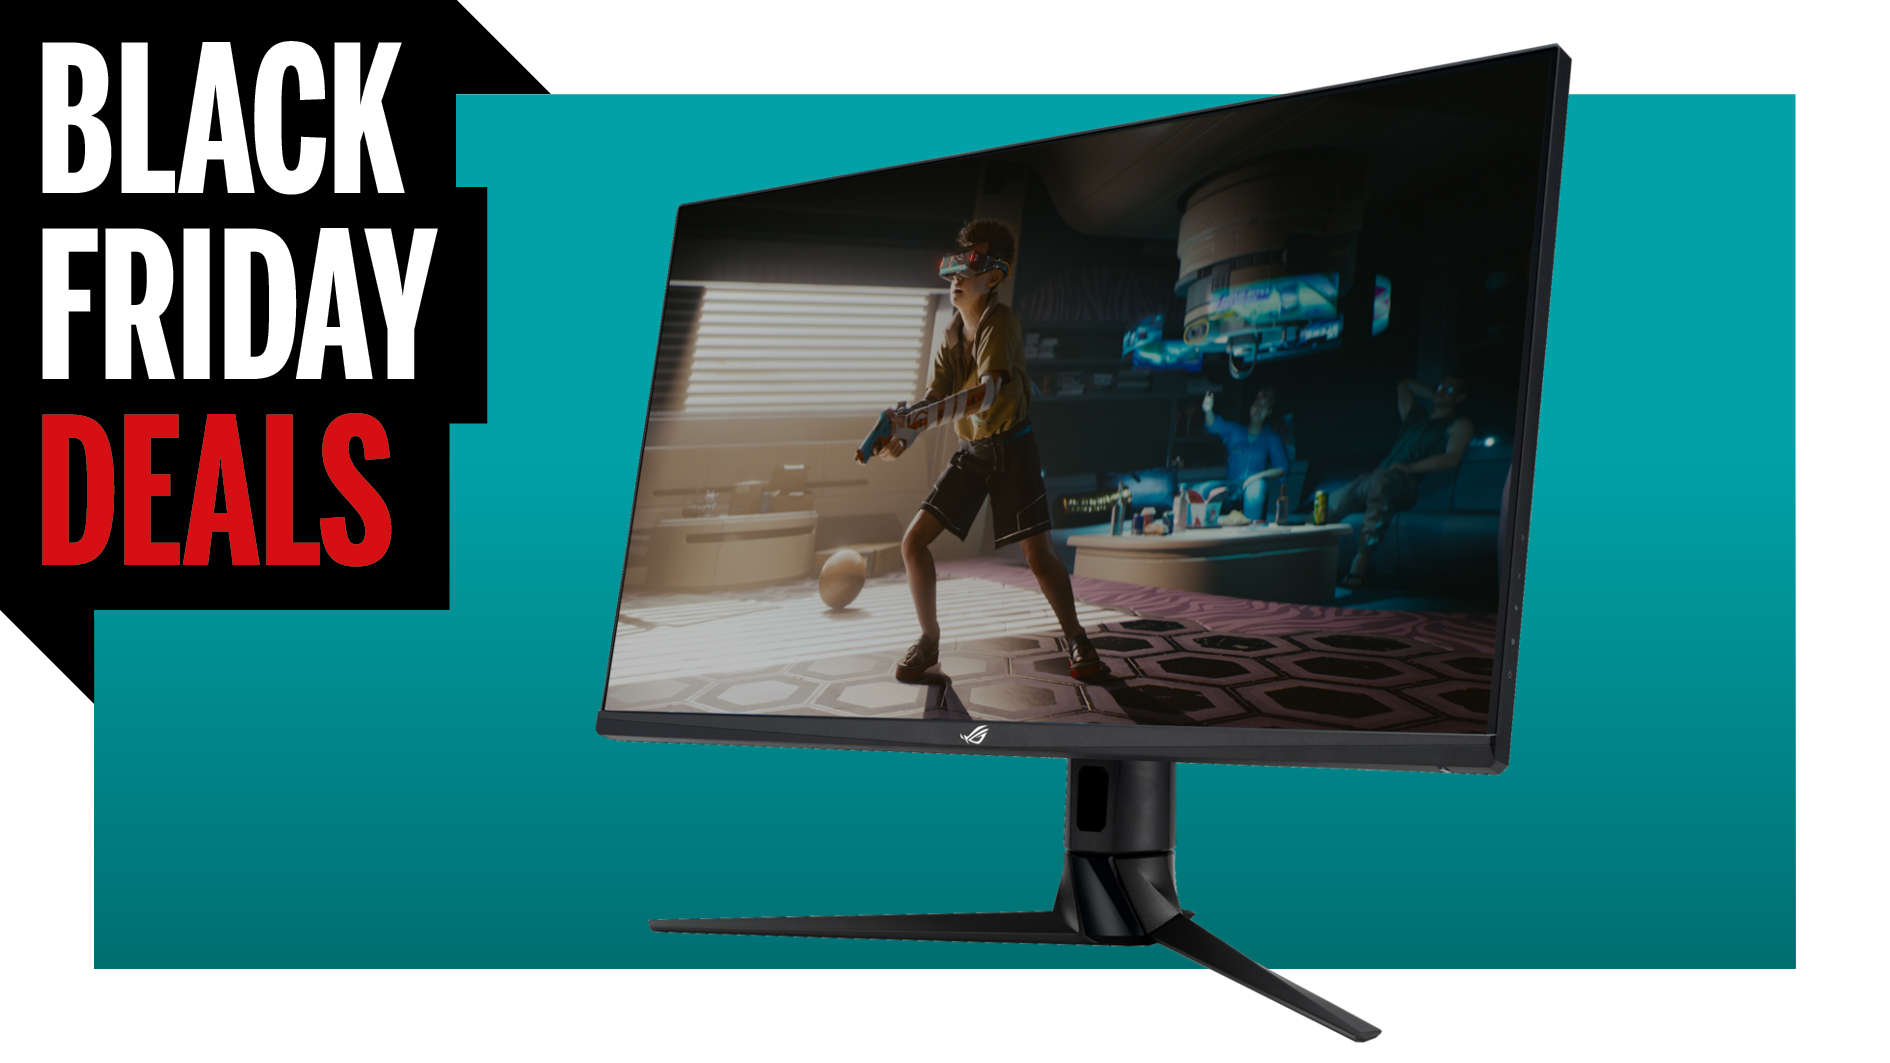 Black Friday gaming monitor deals 2021: the best and brightest screens at great prices